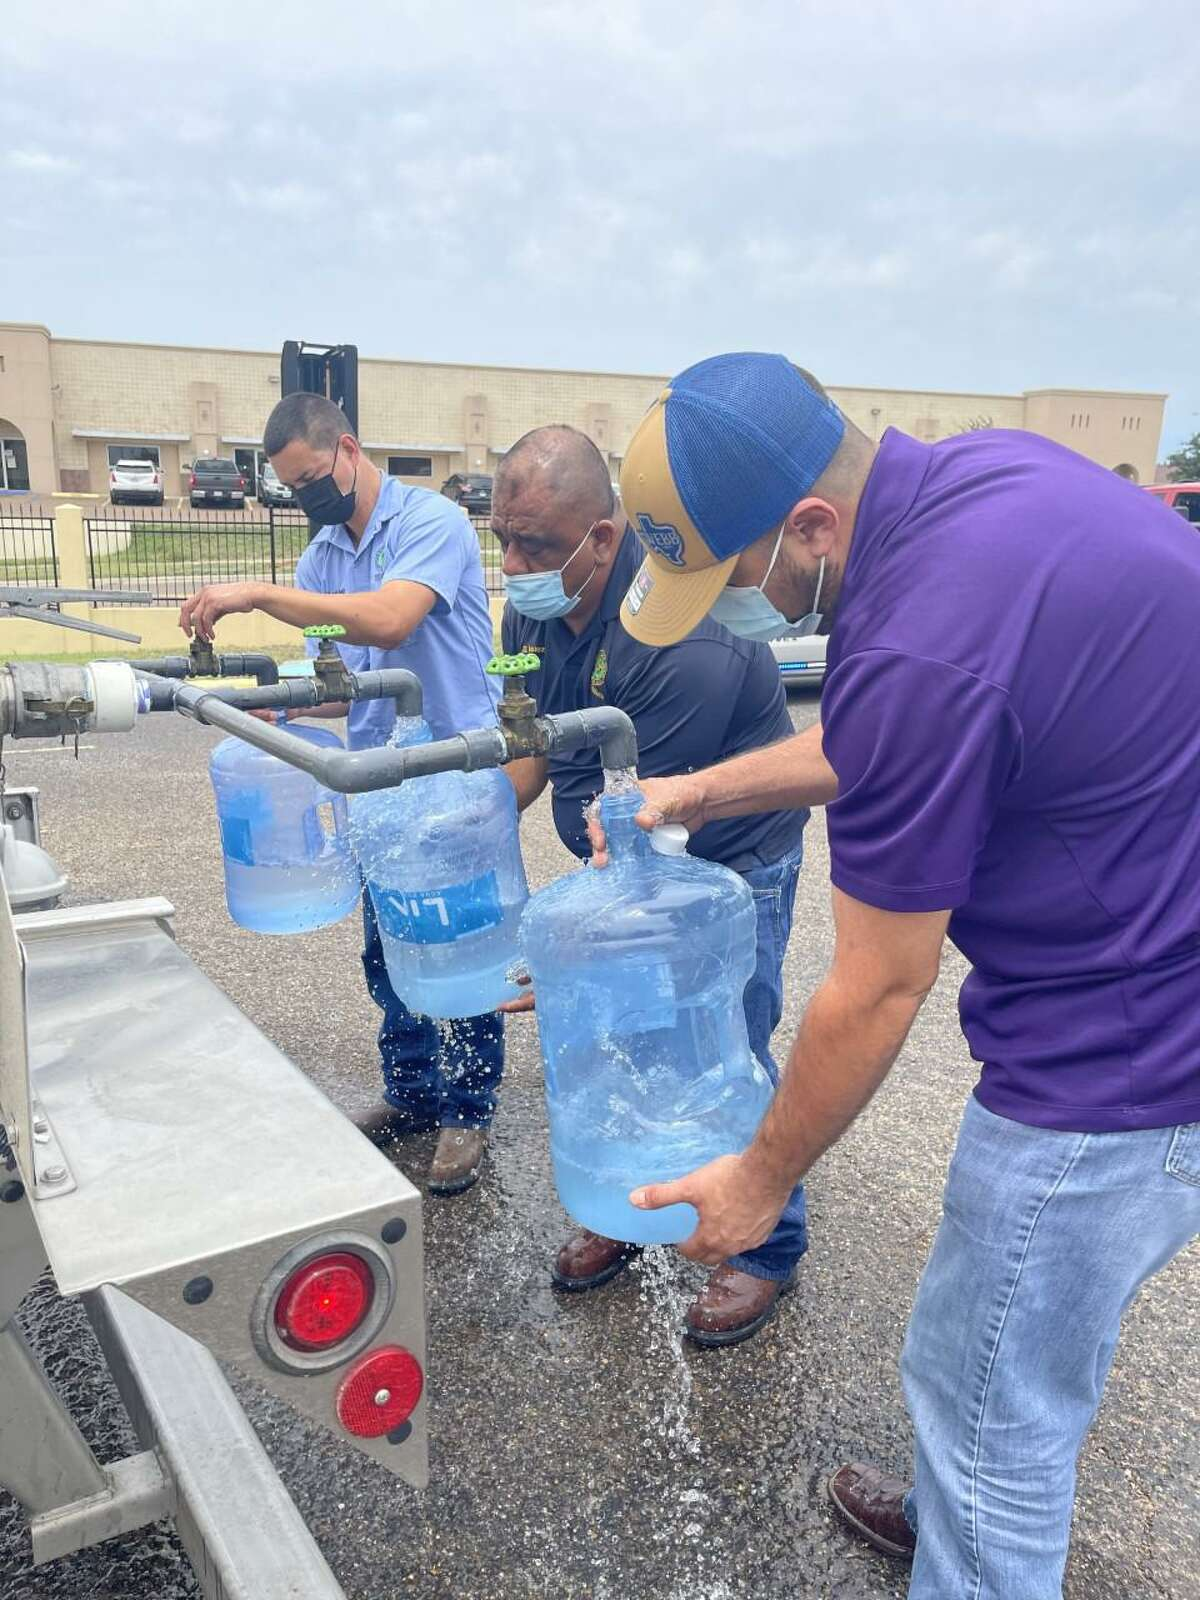 Water donations and area cleanups were provided this week for many people in Webb County who were impacted by the storm which hit the area Monday night.